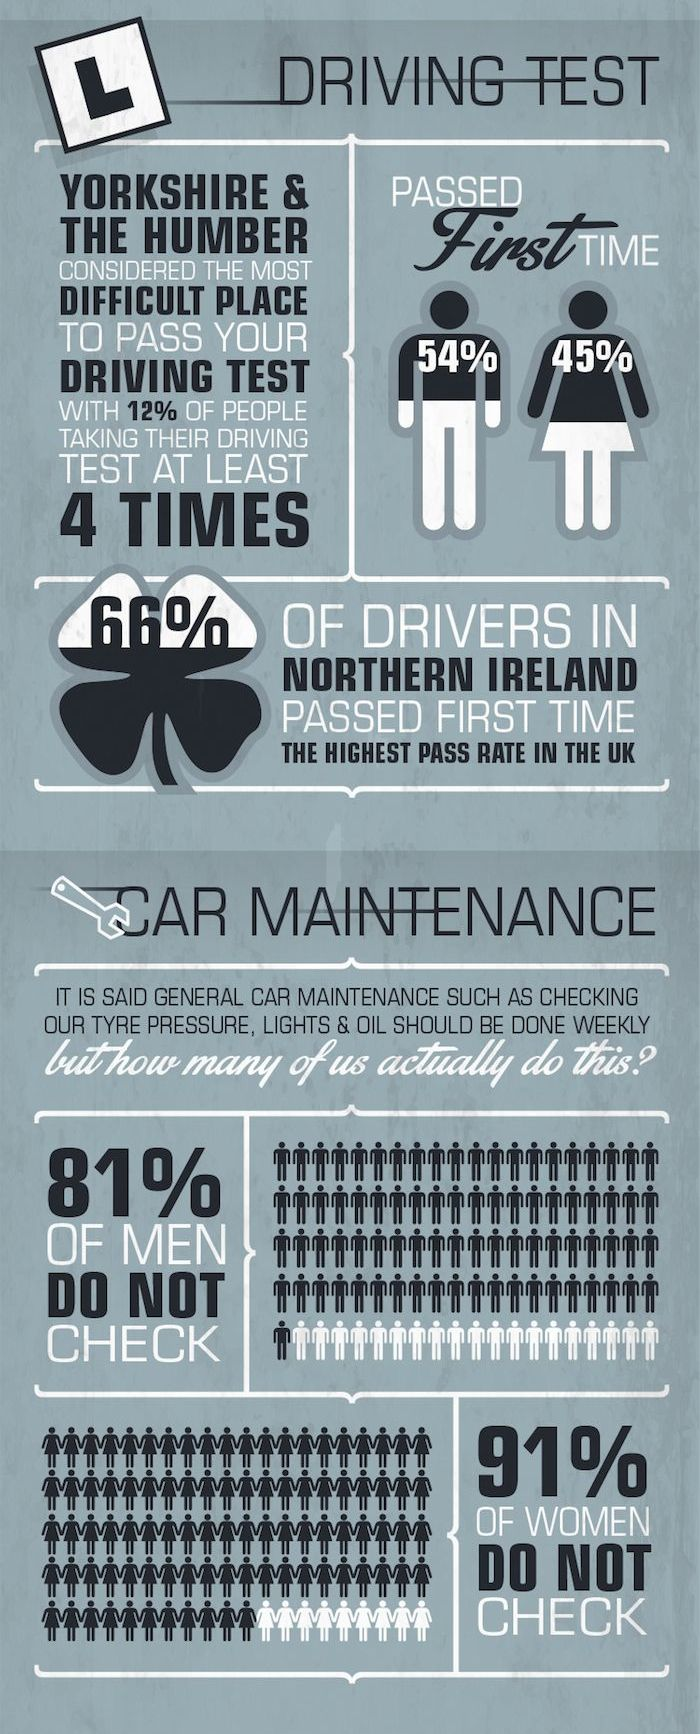 How safe are UK drivers - infographic 02